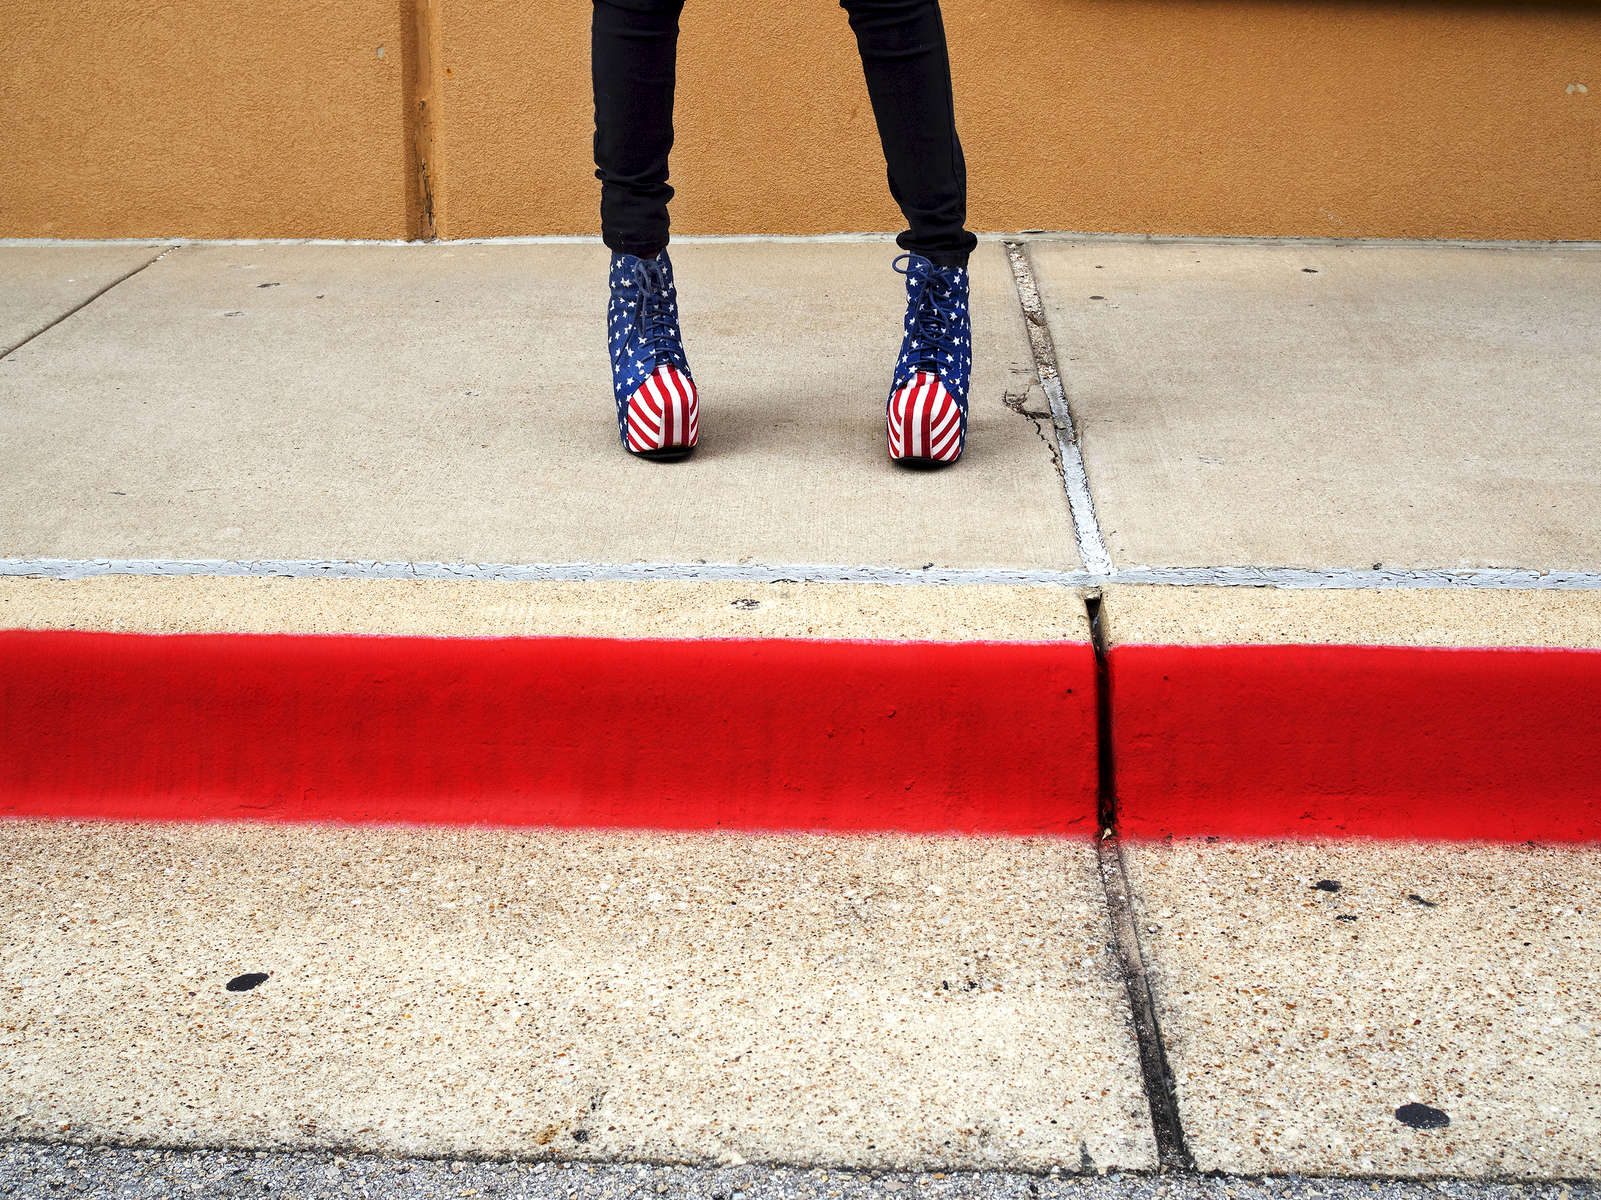 Patriotic footwear worn by Chloe on her way to work in Southlake.Southlake is an affluent city located north-west of Dallas in the U.S state of Texas with a population of arond 26,5700. Southlake was named in 2014 as one of TIME magazines top 10 richest towns in America a and is known for public schools, Southlake Town Square, its wealth, Gateway Church and Carroll High School's 8-time state champion football team.Dallas is a major city in Texas and is the largest urban center of the fourth most populous metropolitan area in the United States. The city ranks ninth in the U.S. and third in Texas after Houston and San Antonio. The city's prominence arose from its historical importance as a center for the oil and cotton industries, and its position along numerous railroad lines.For two weeks in the summer of 2015, photographer Peter Dench visited Dallas to document the metroplex in his epic reportage, DENCH DOES DALLAS.Photographed using an Olympus E-M5 Mark II©Peter Dench/Getty Images Reportage